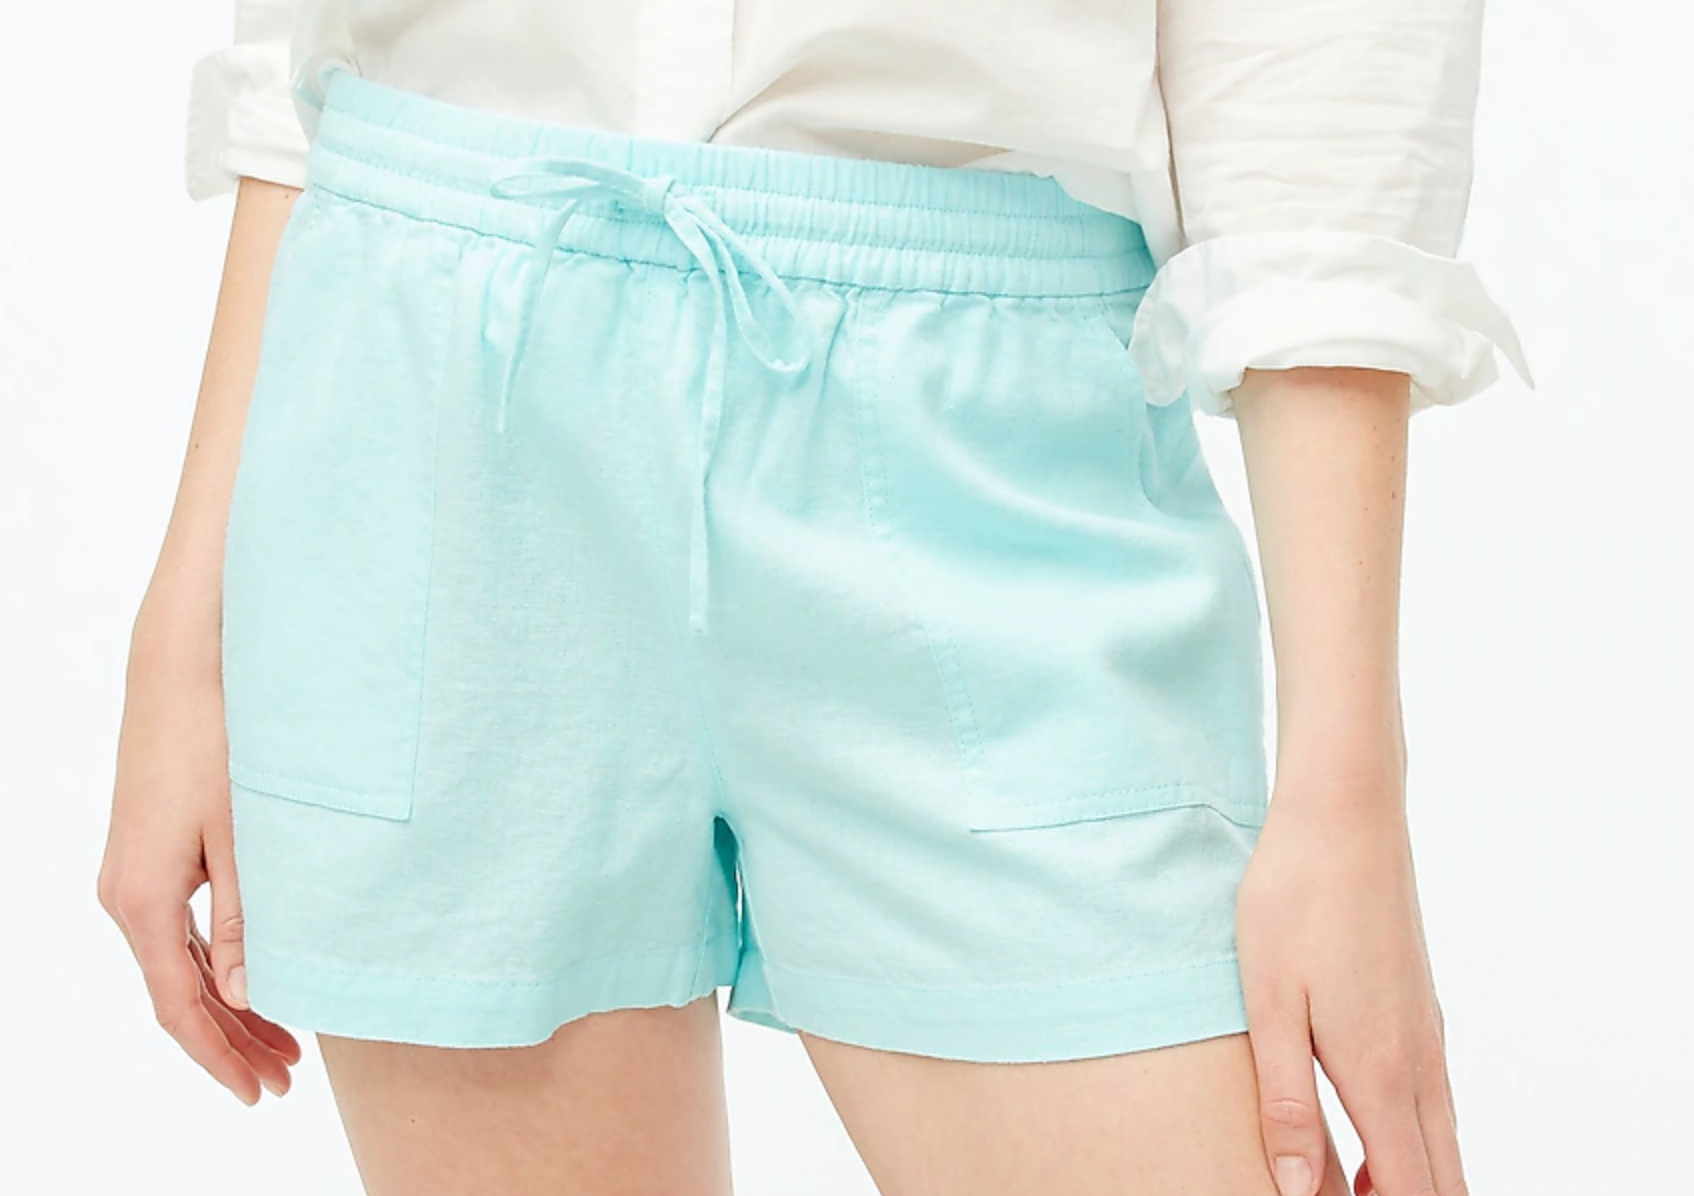 model wearing the shorts in teal